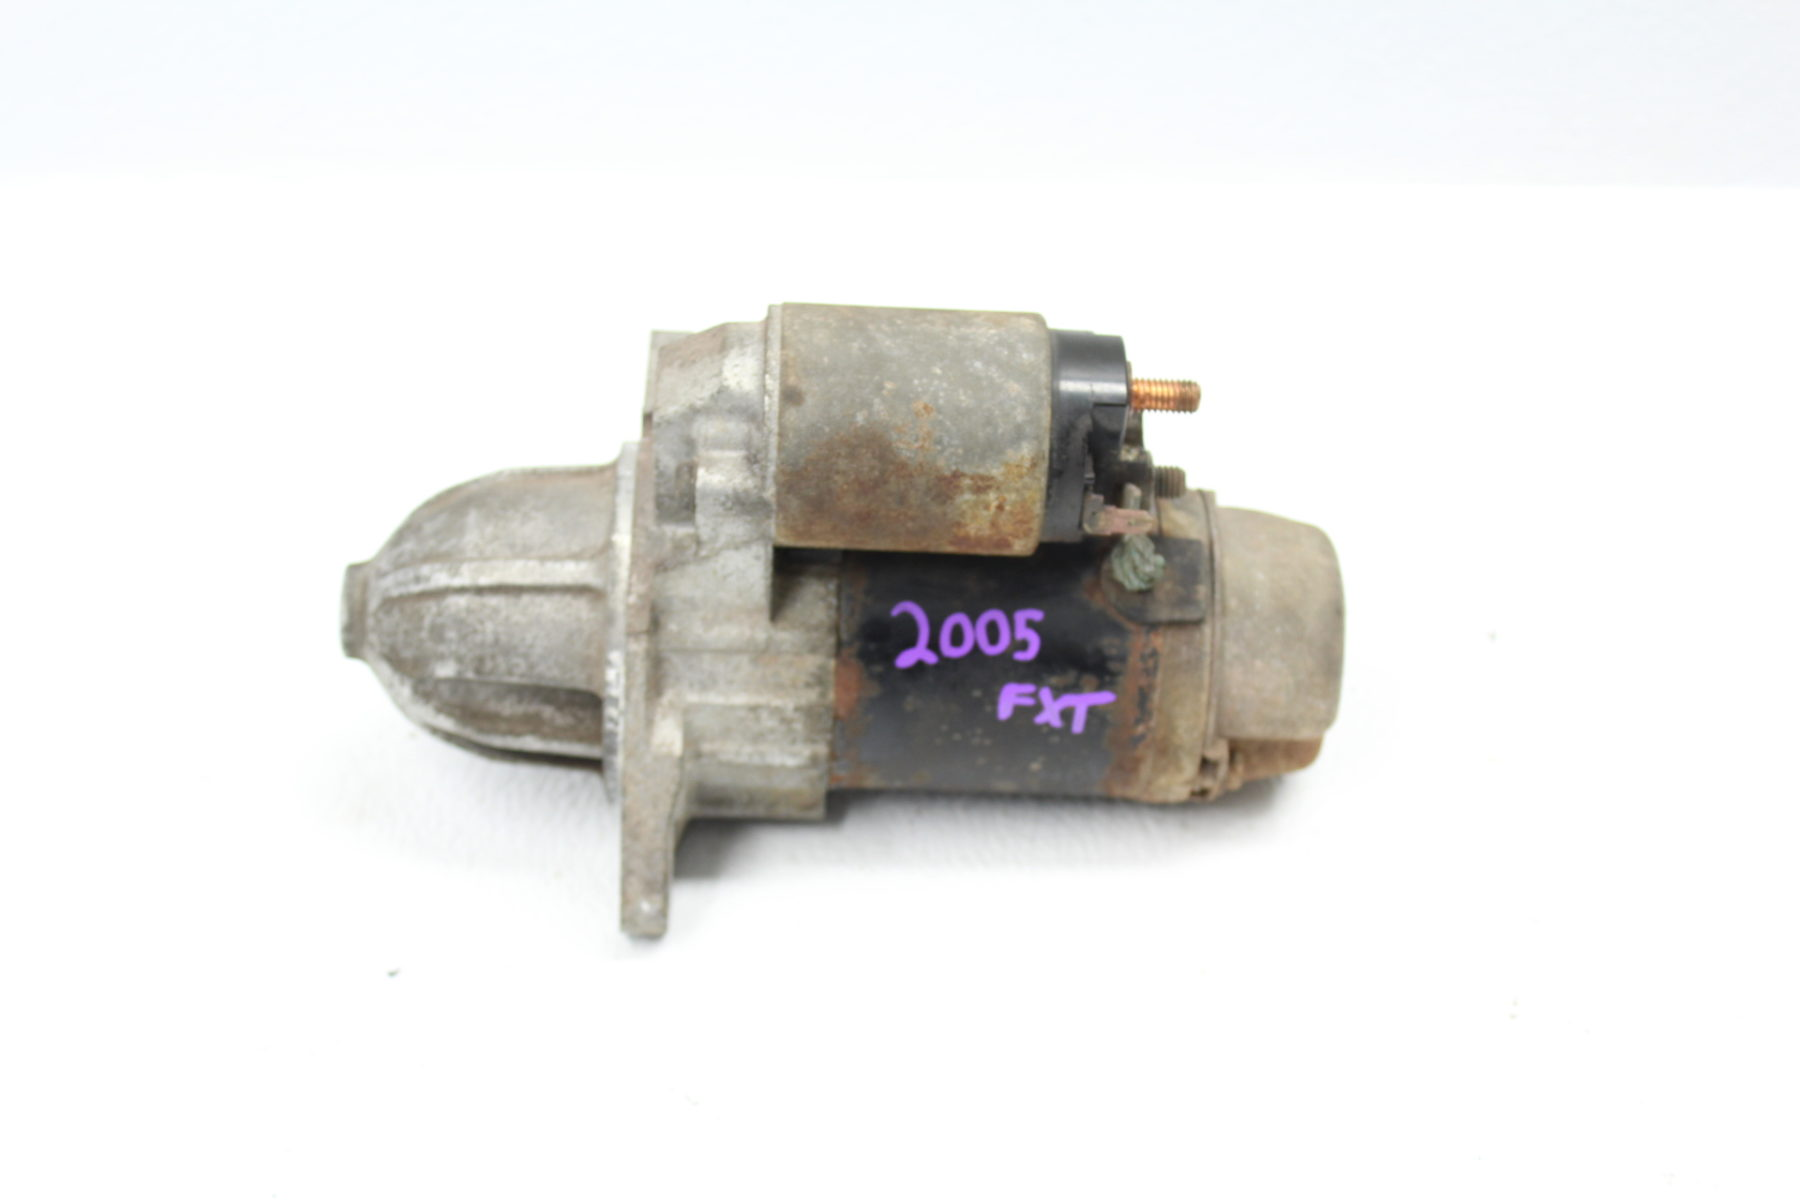 04-05 2004-2005 SUBARU FORESTER XT FXT A/T STARTER MOTOR AUTOMATIC TRANS